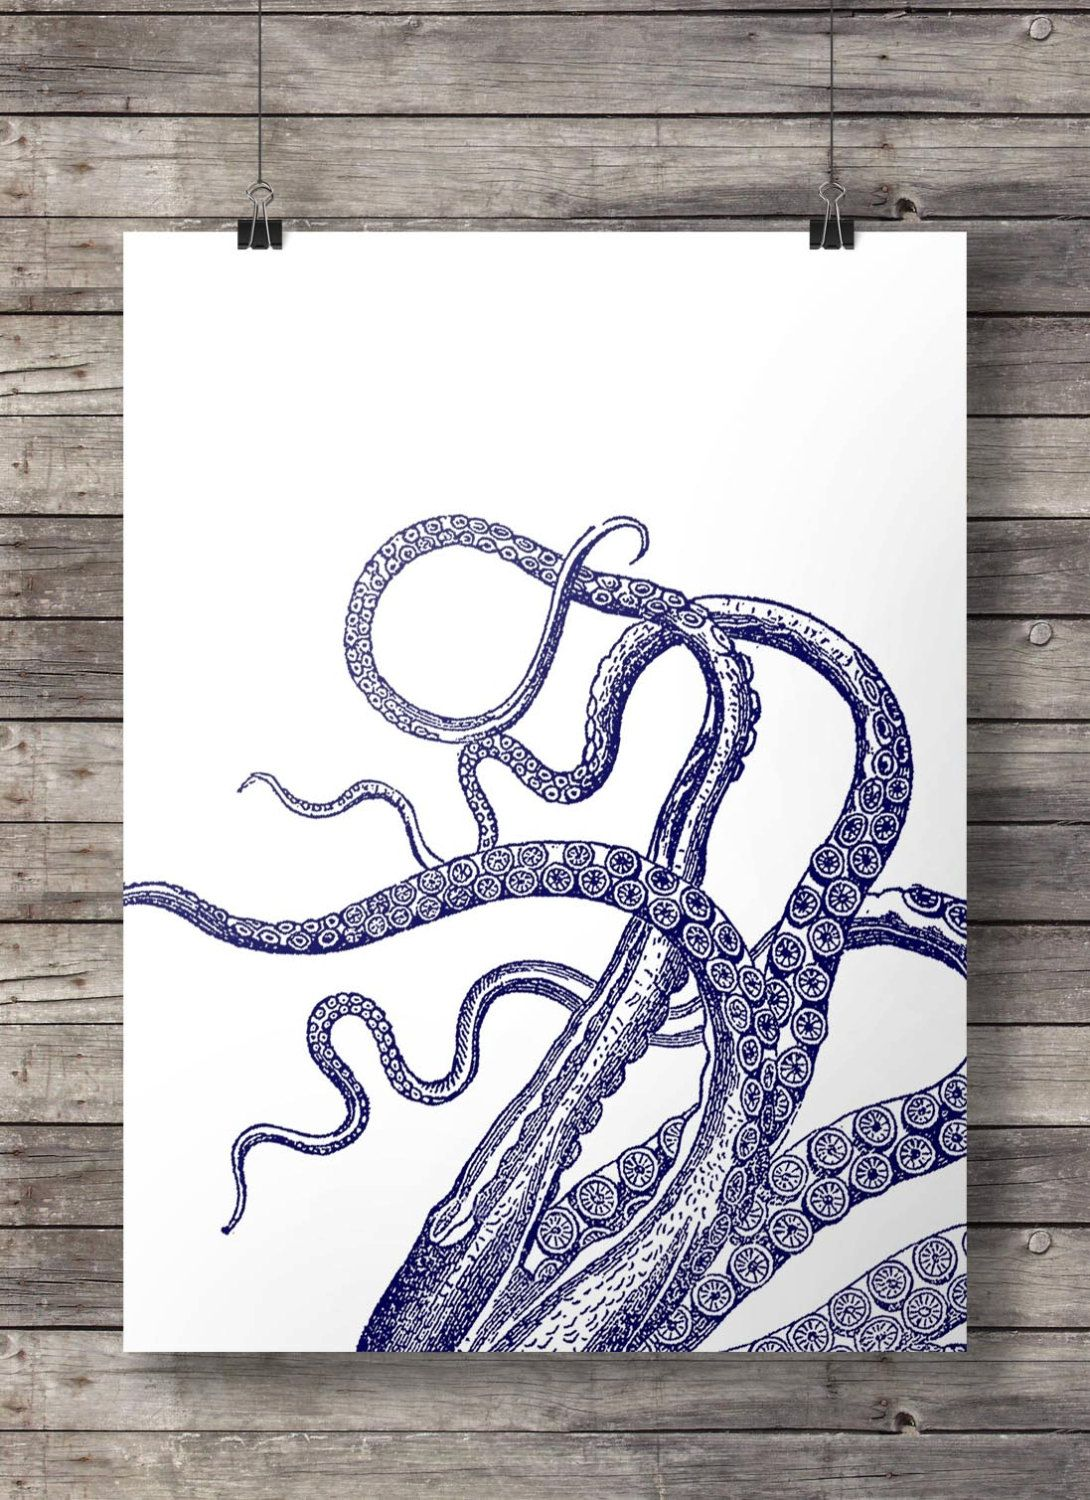 Printable Art | Nautical Octopus Tentacles Print | Nautical Decor |  Printable Kraken Coastal Navy Beach